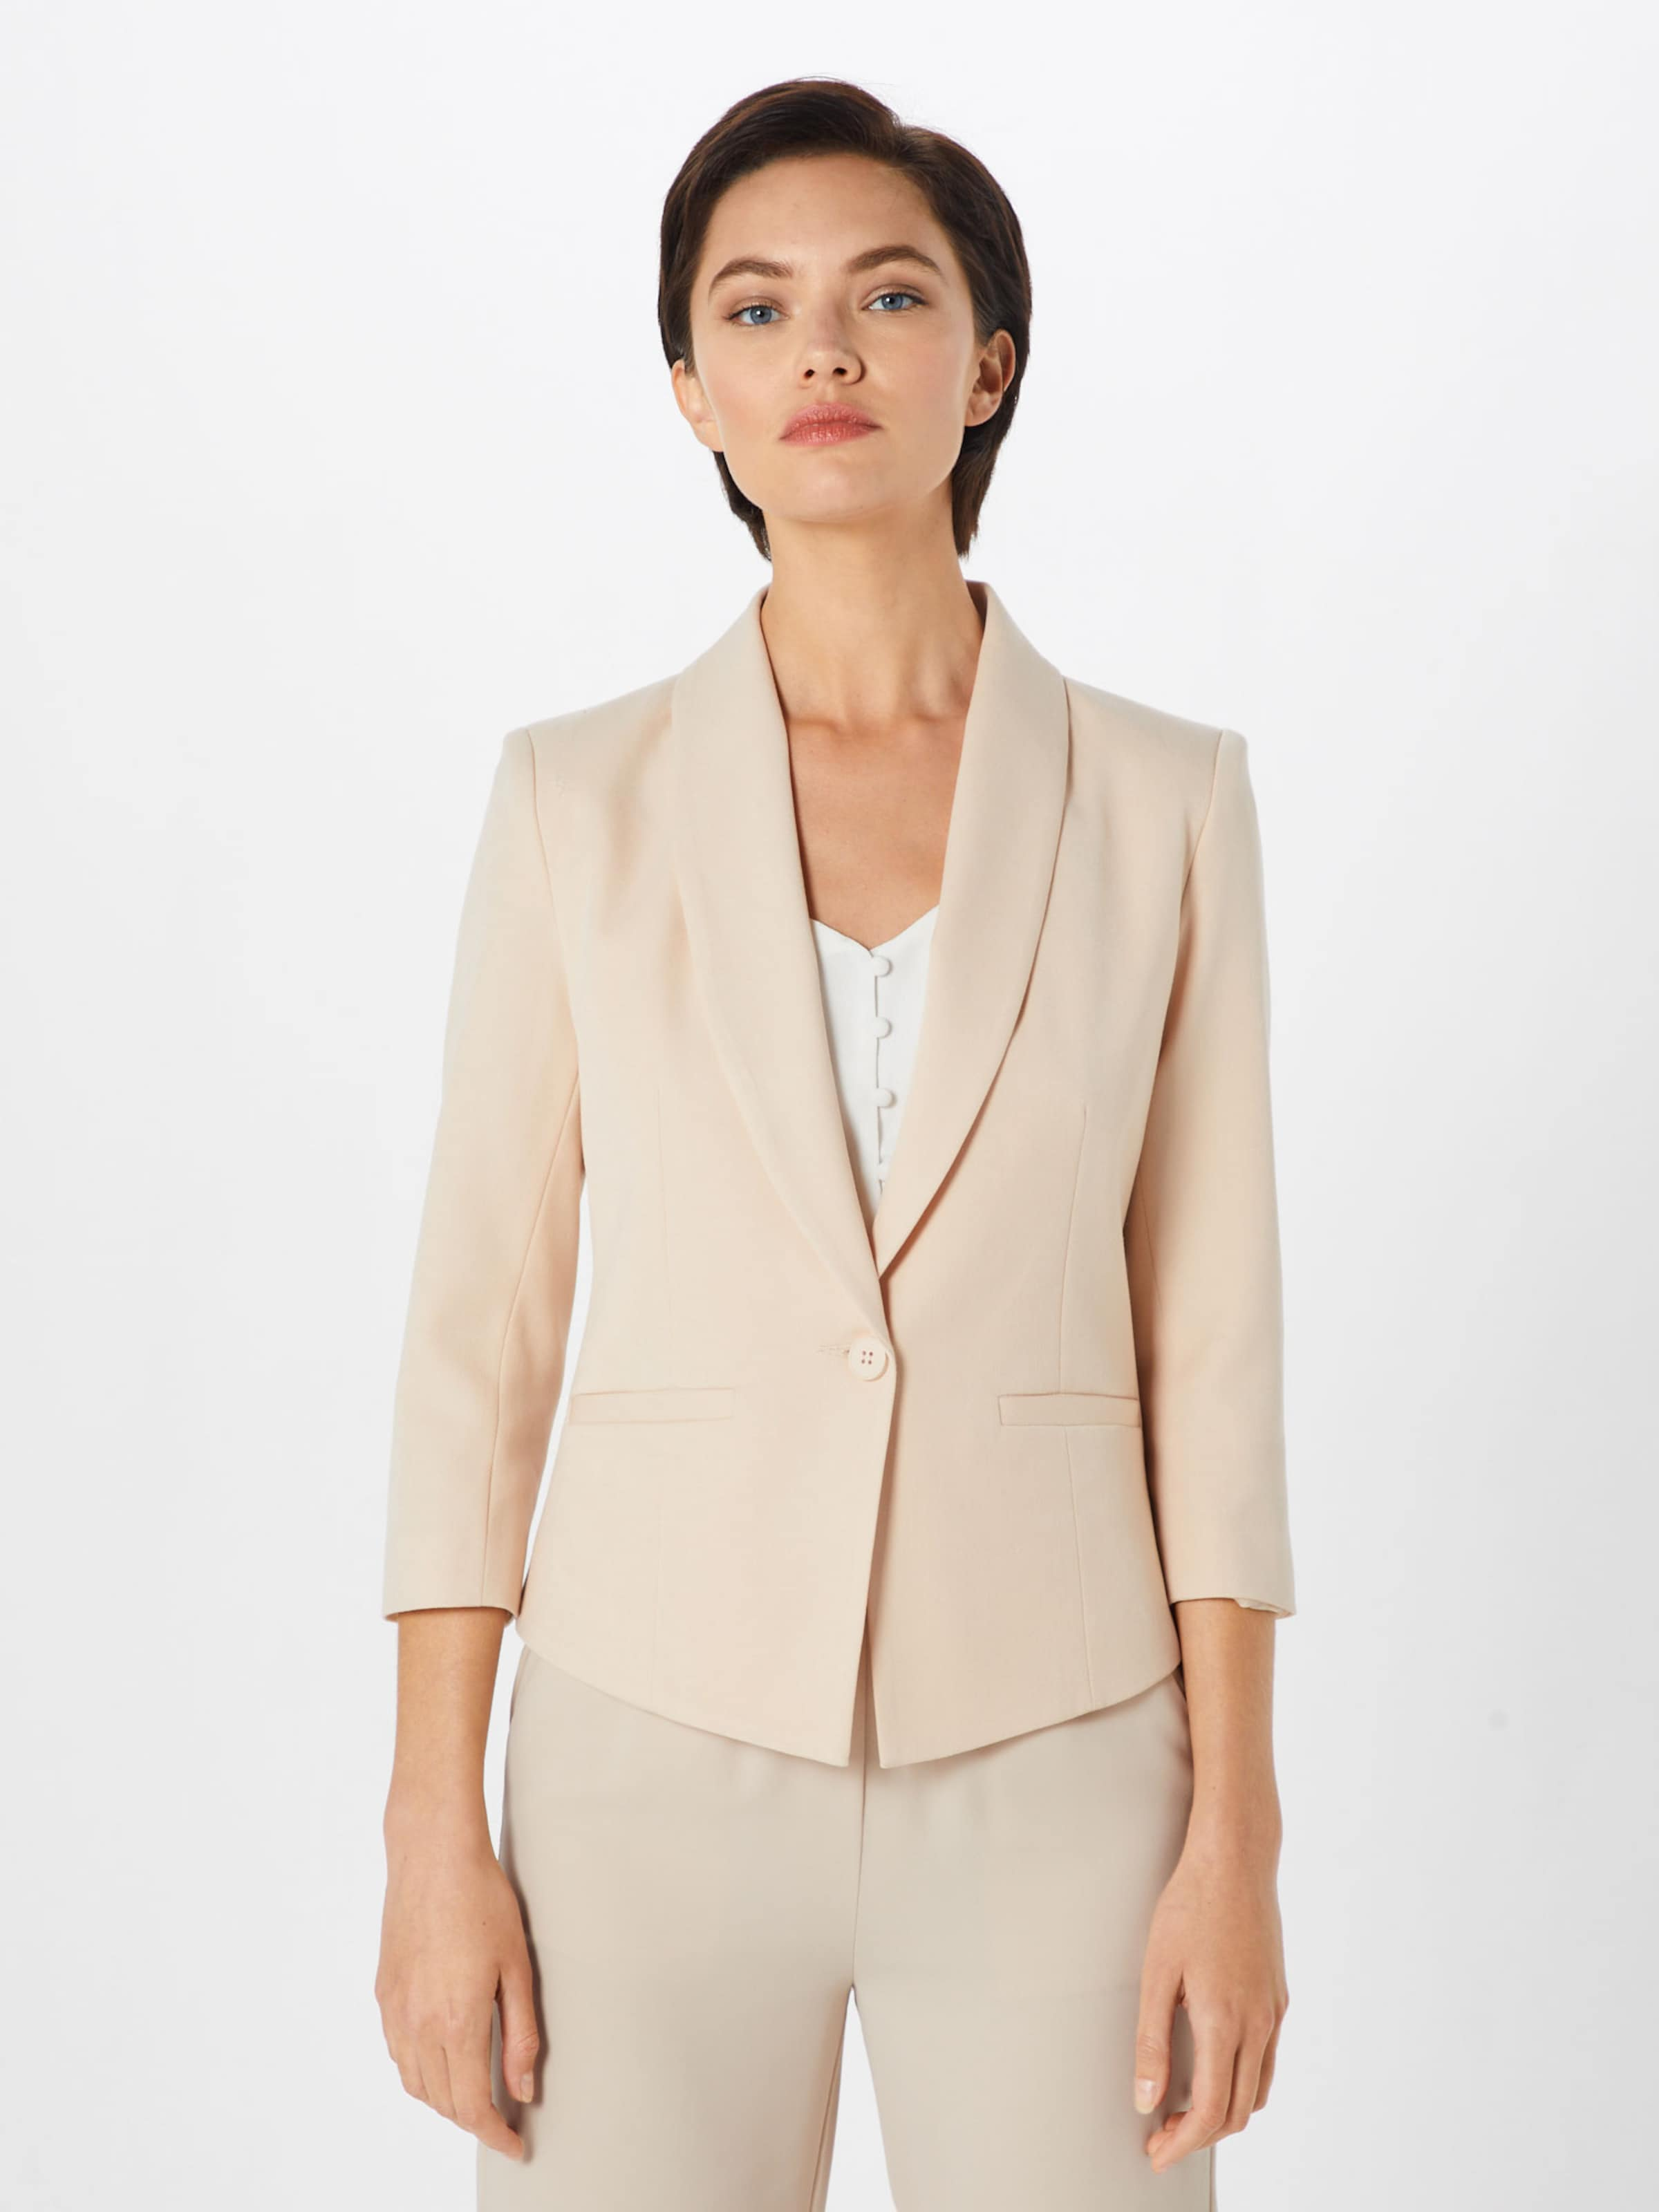 Blazer 'evaline' Minimum Blazer 'evaline' Puder In Minimum Blazer Puder In Minimum rxBQdhtsC